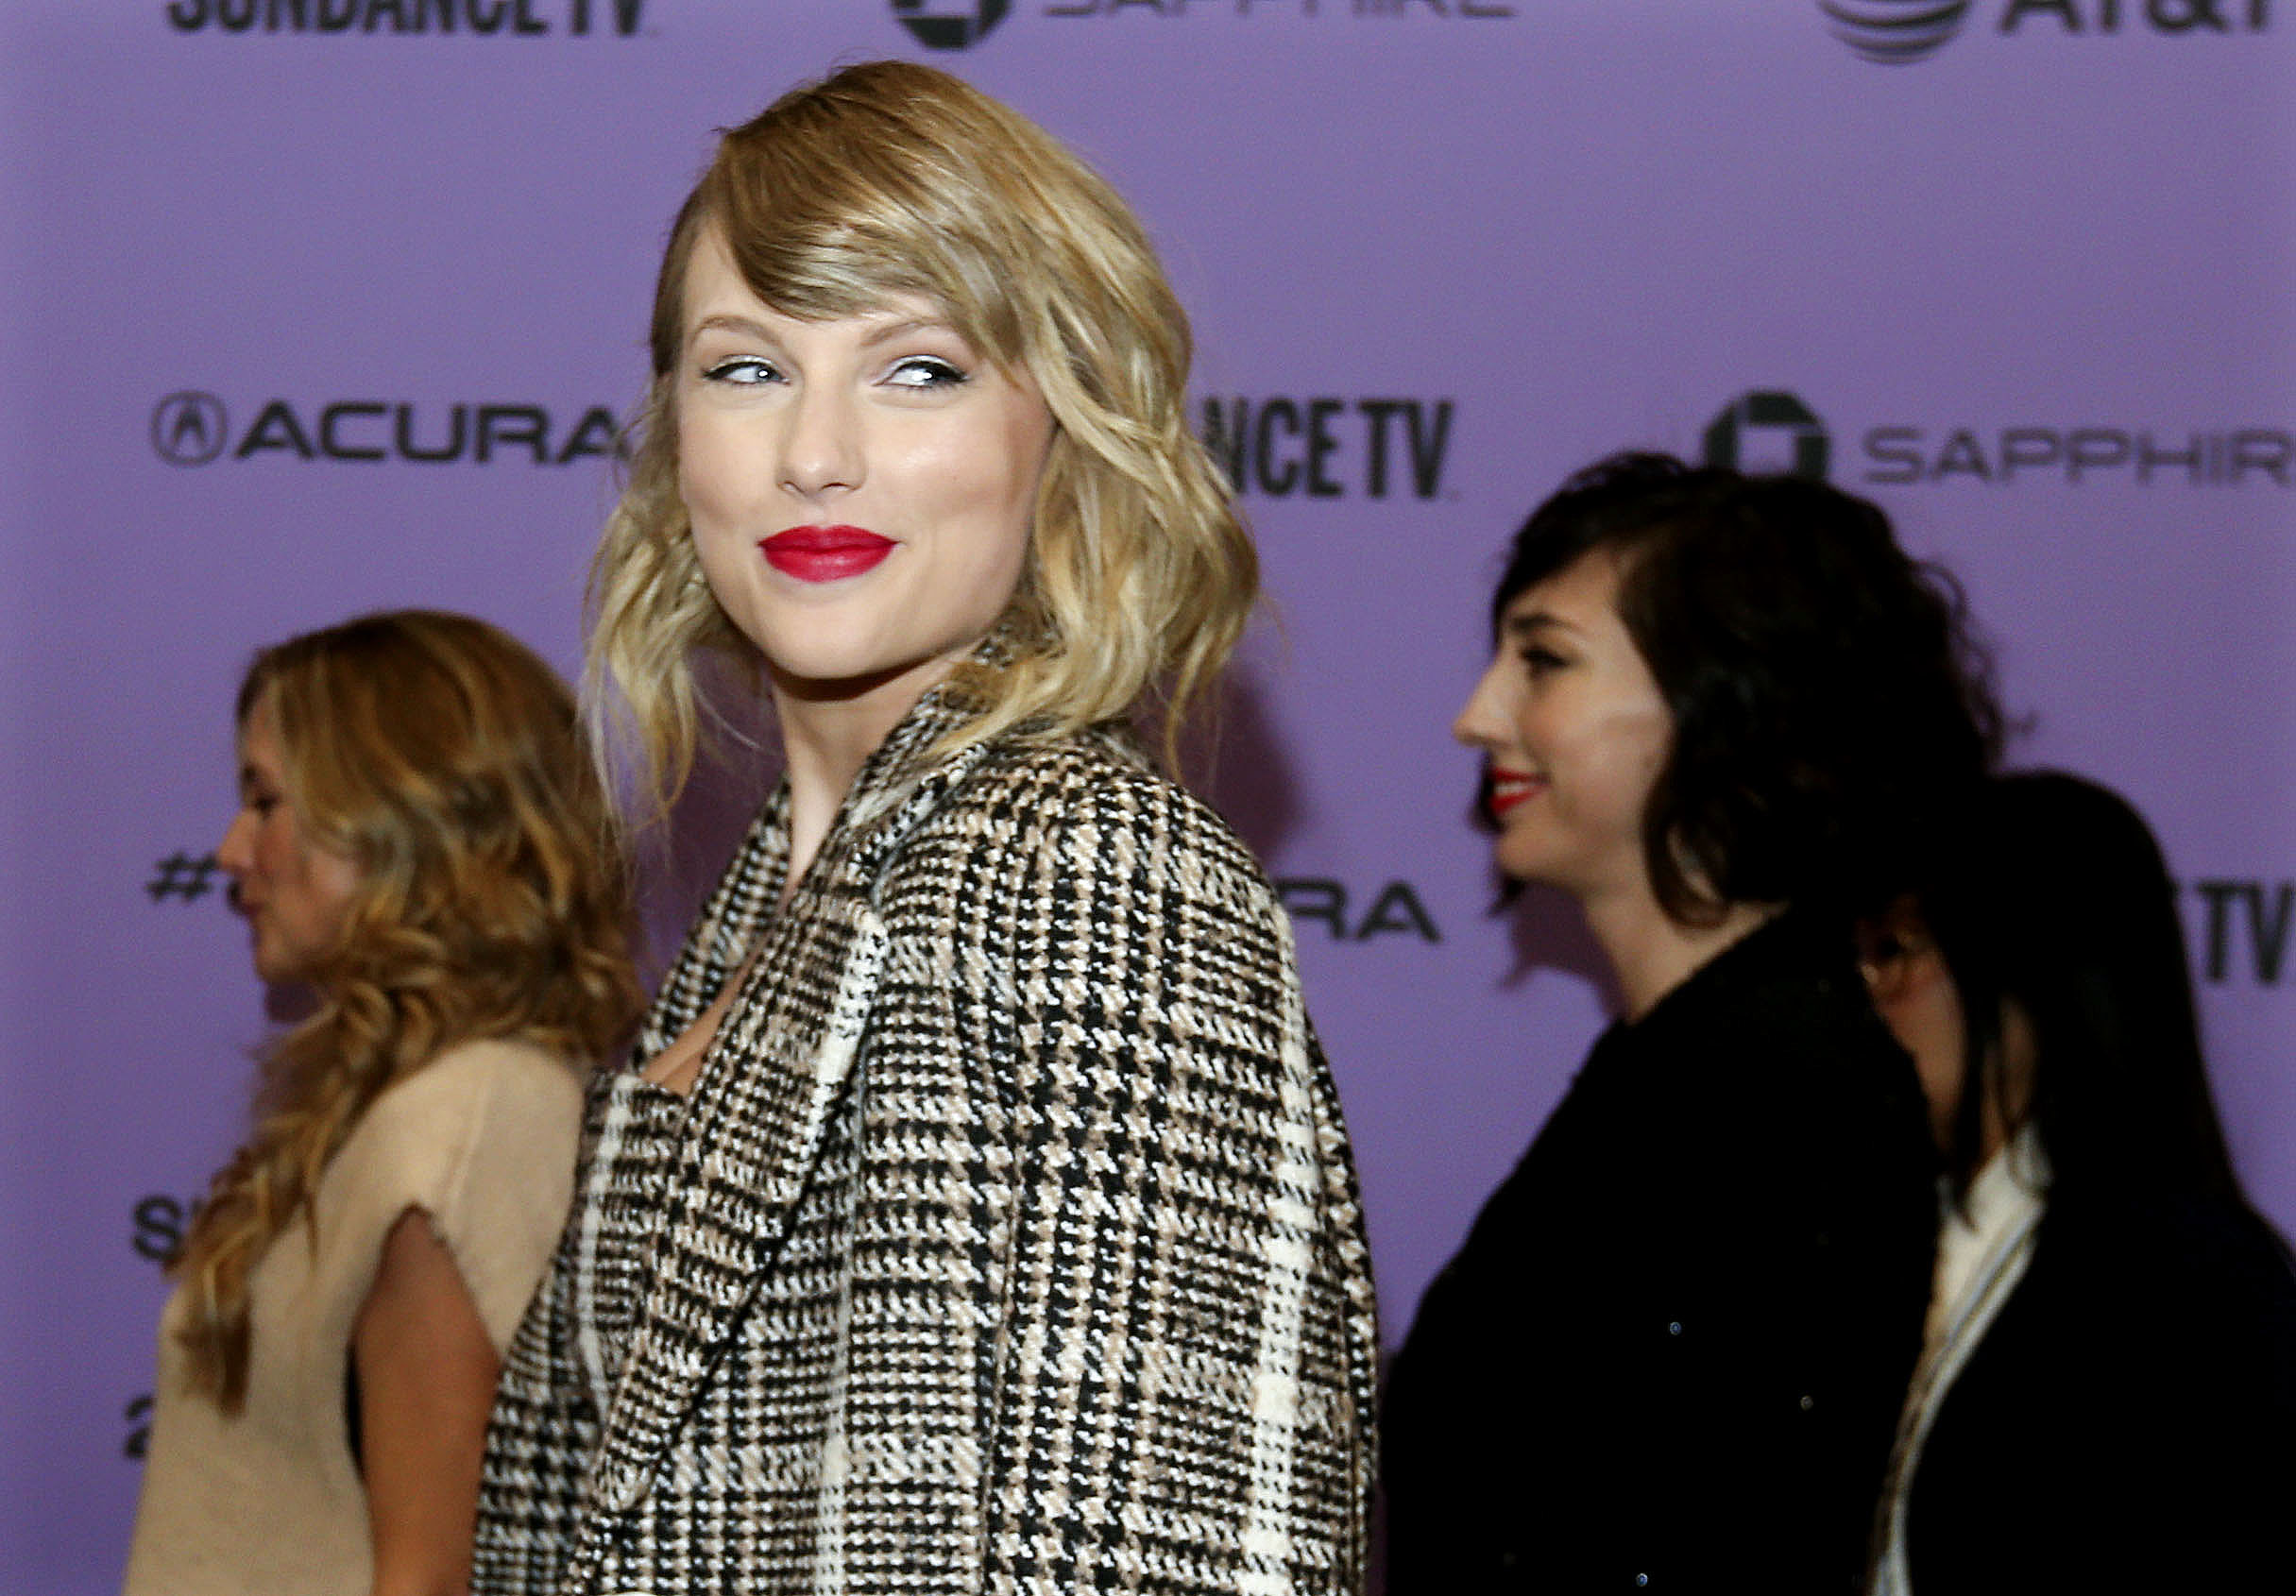 """Taylor Swift poses for photos before the premiere of the documentary """"Miss Americana"""" at the Eccles Theatre in Park City, Thursday, Jan. 23, 2020."""